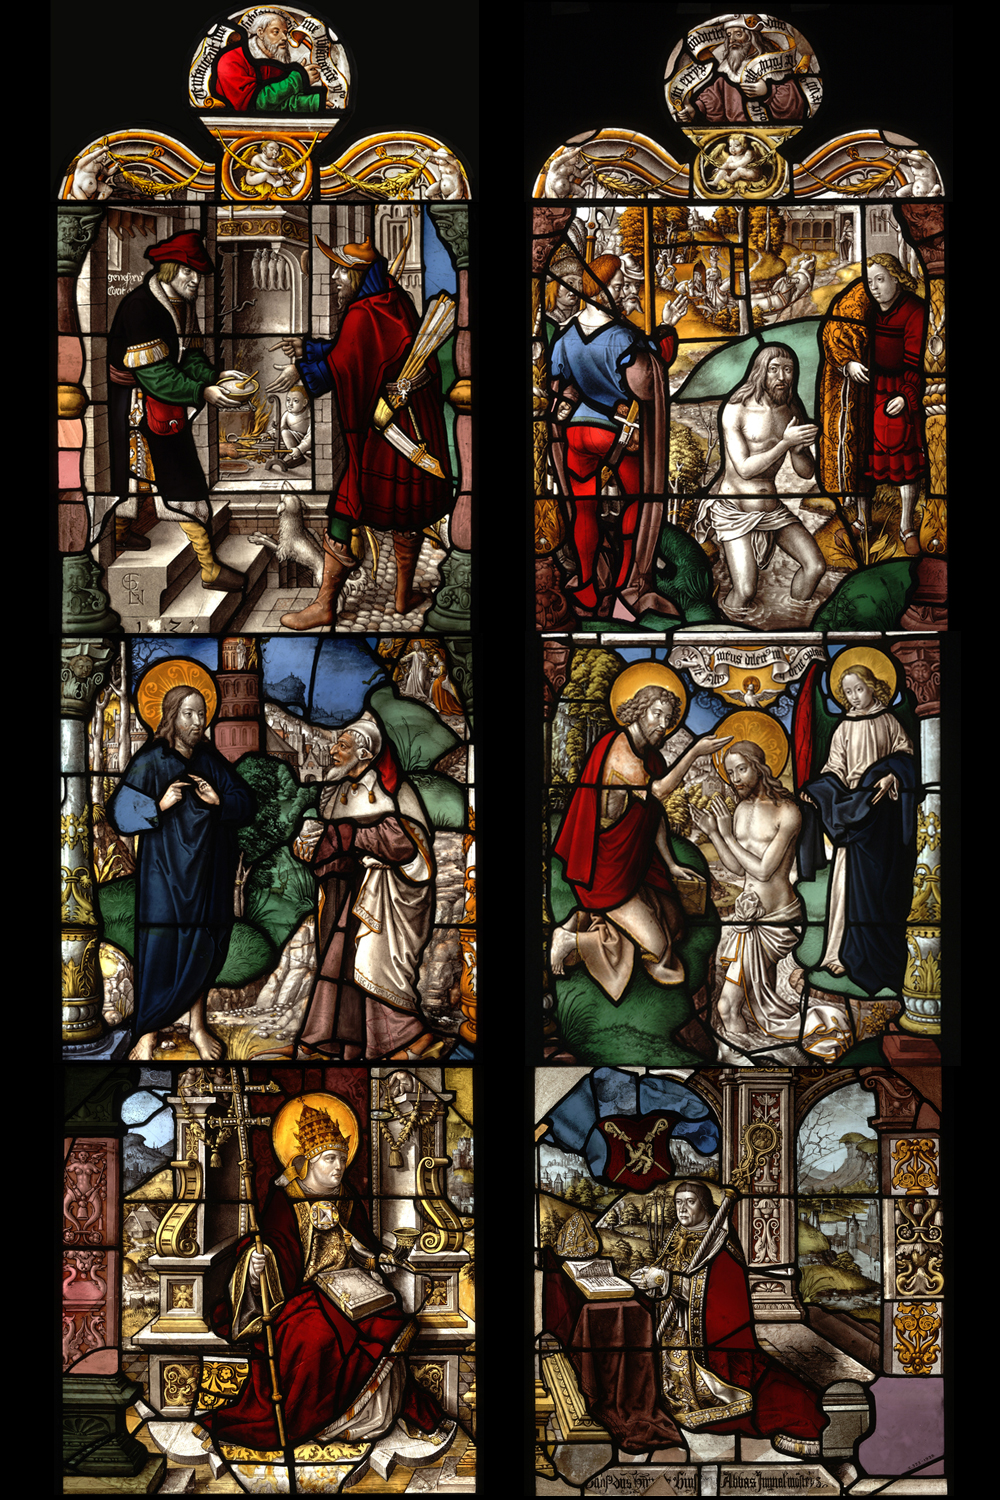 Stained glass from mariawald abbey design symbolism victoria reconstruction of the first window in the north walk of mariawald abbey cloister by gerhard biocorpaavc Choice Image